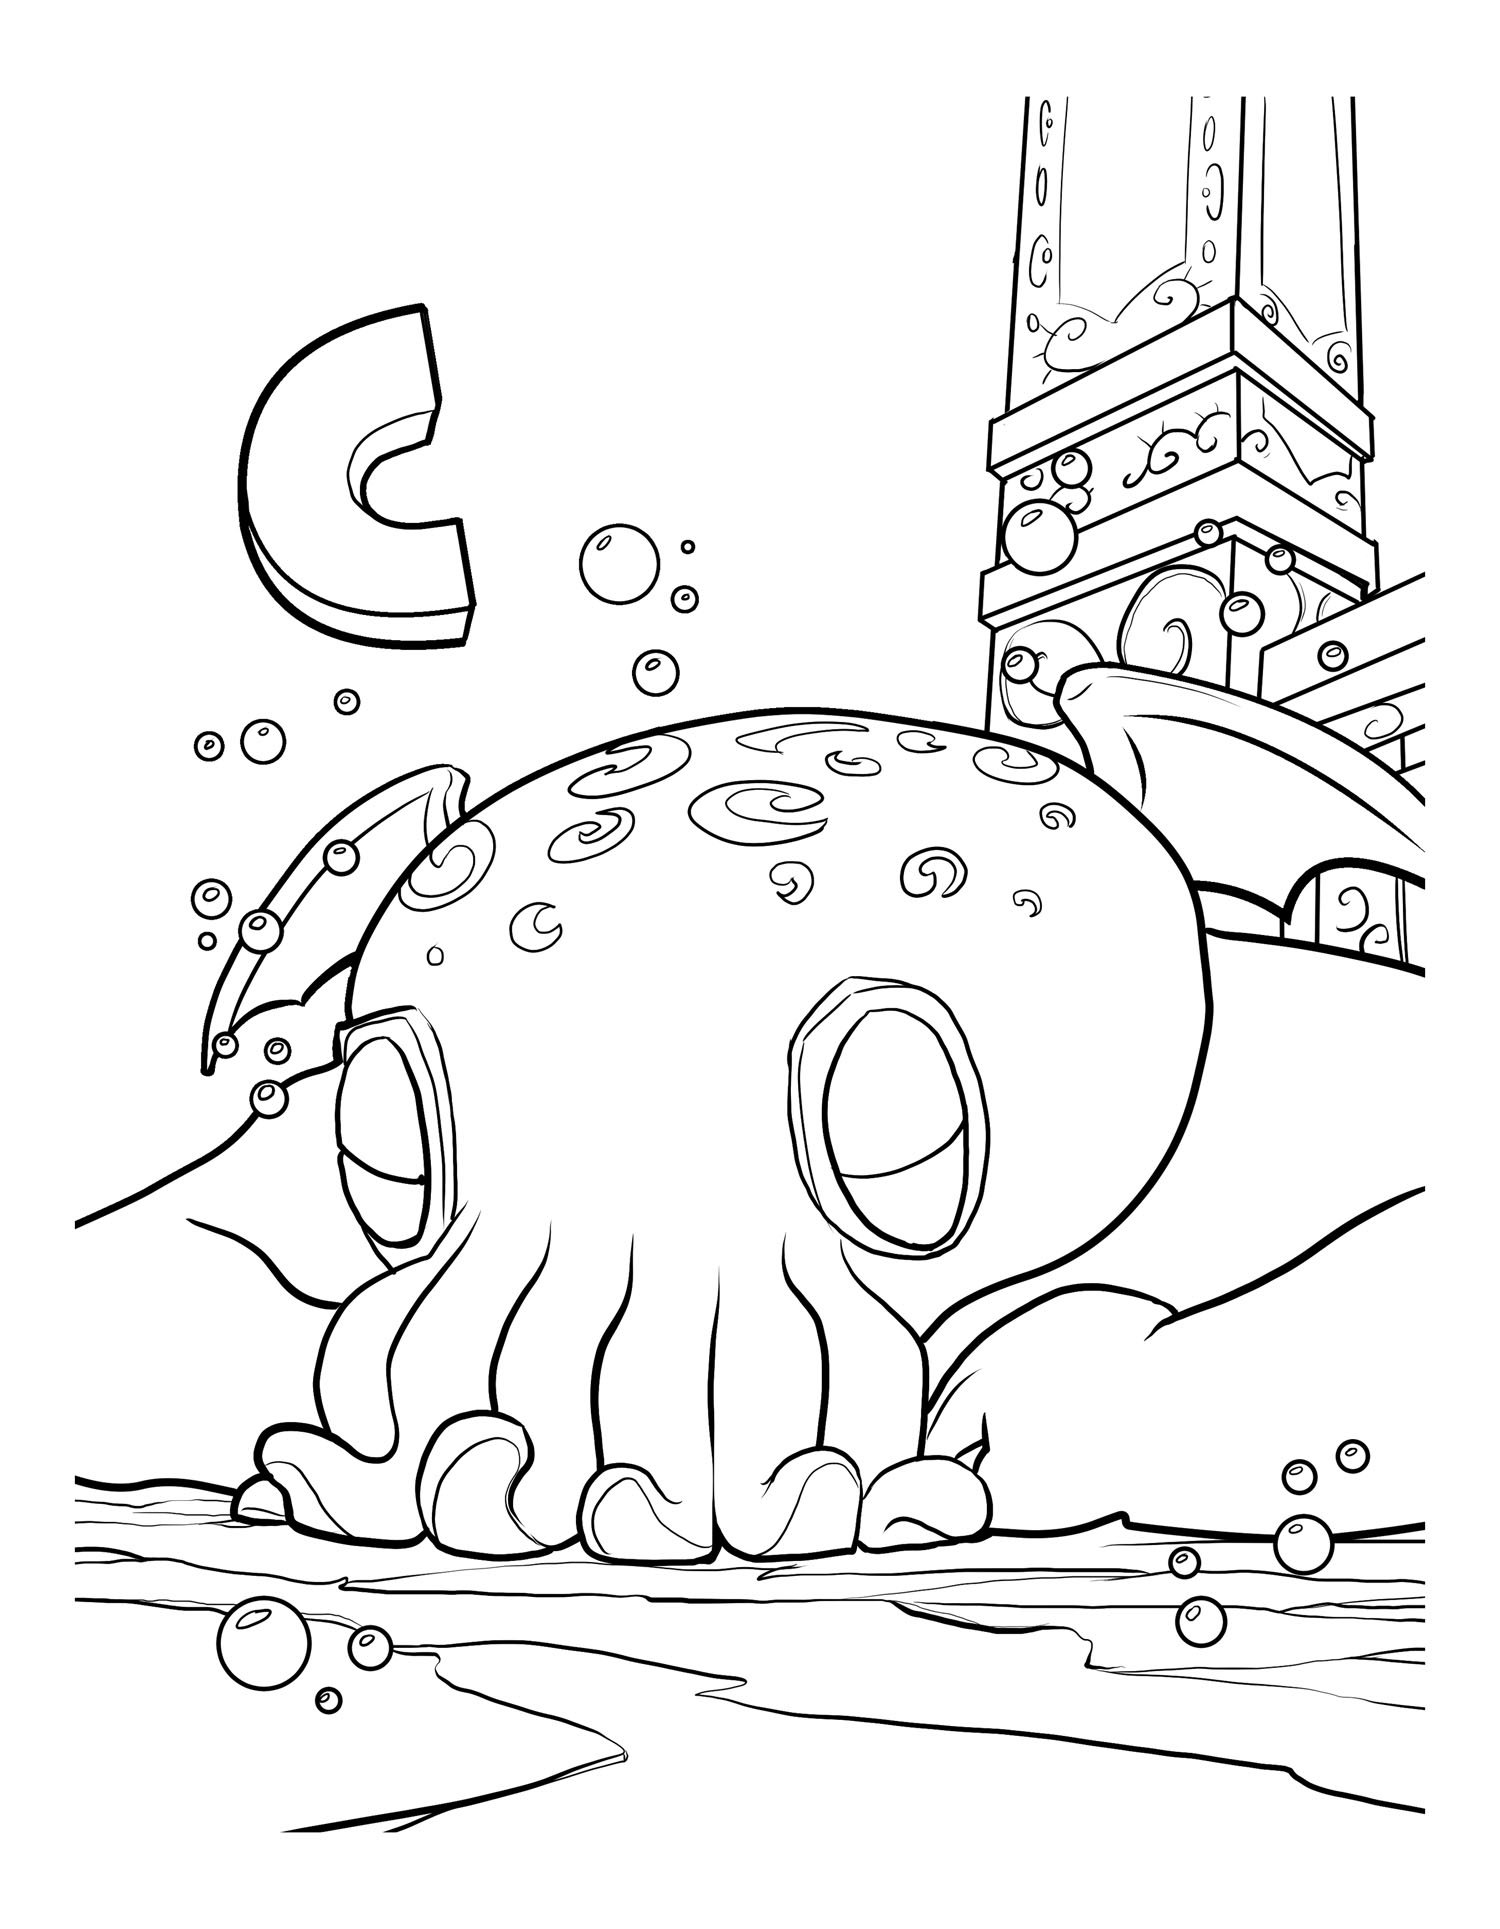 C Is For Cthulhu Coloring Book Greg Murphy Jules Rivera Jonathan Rector Jason Ciaramella Tyler James 9780996772419 Amazon Books